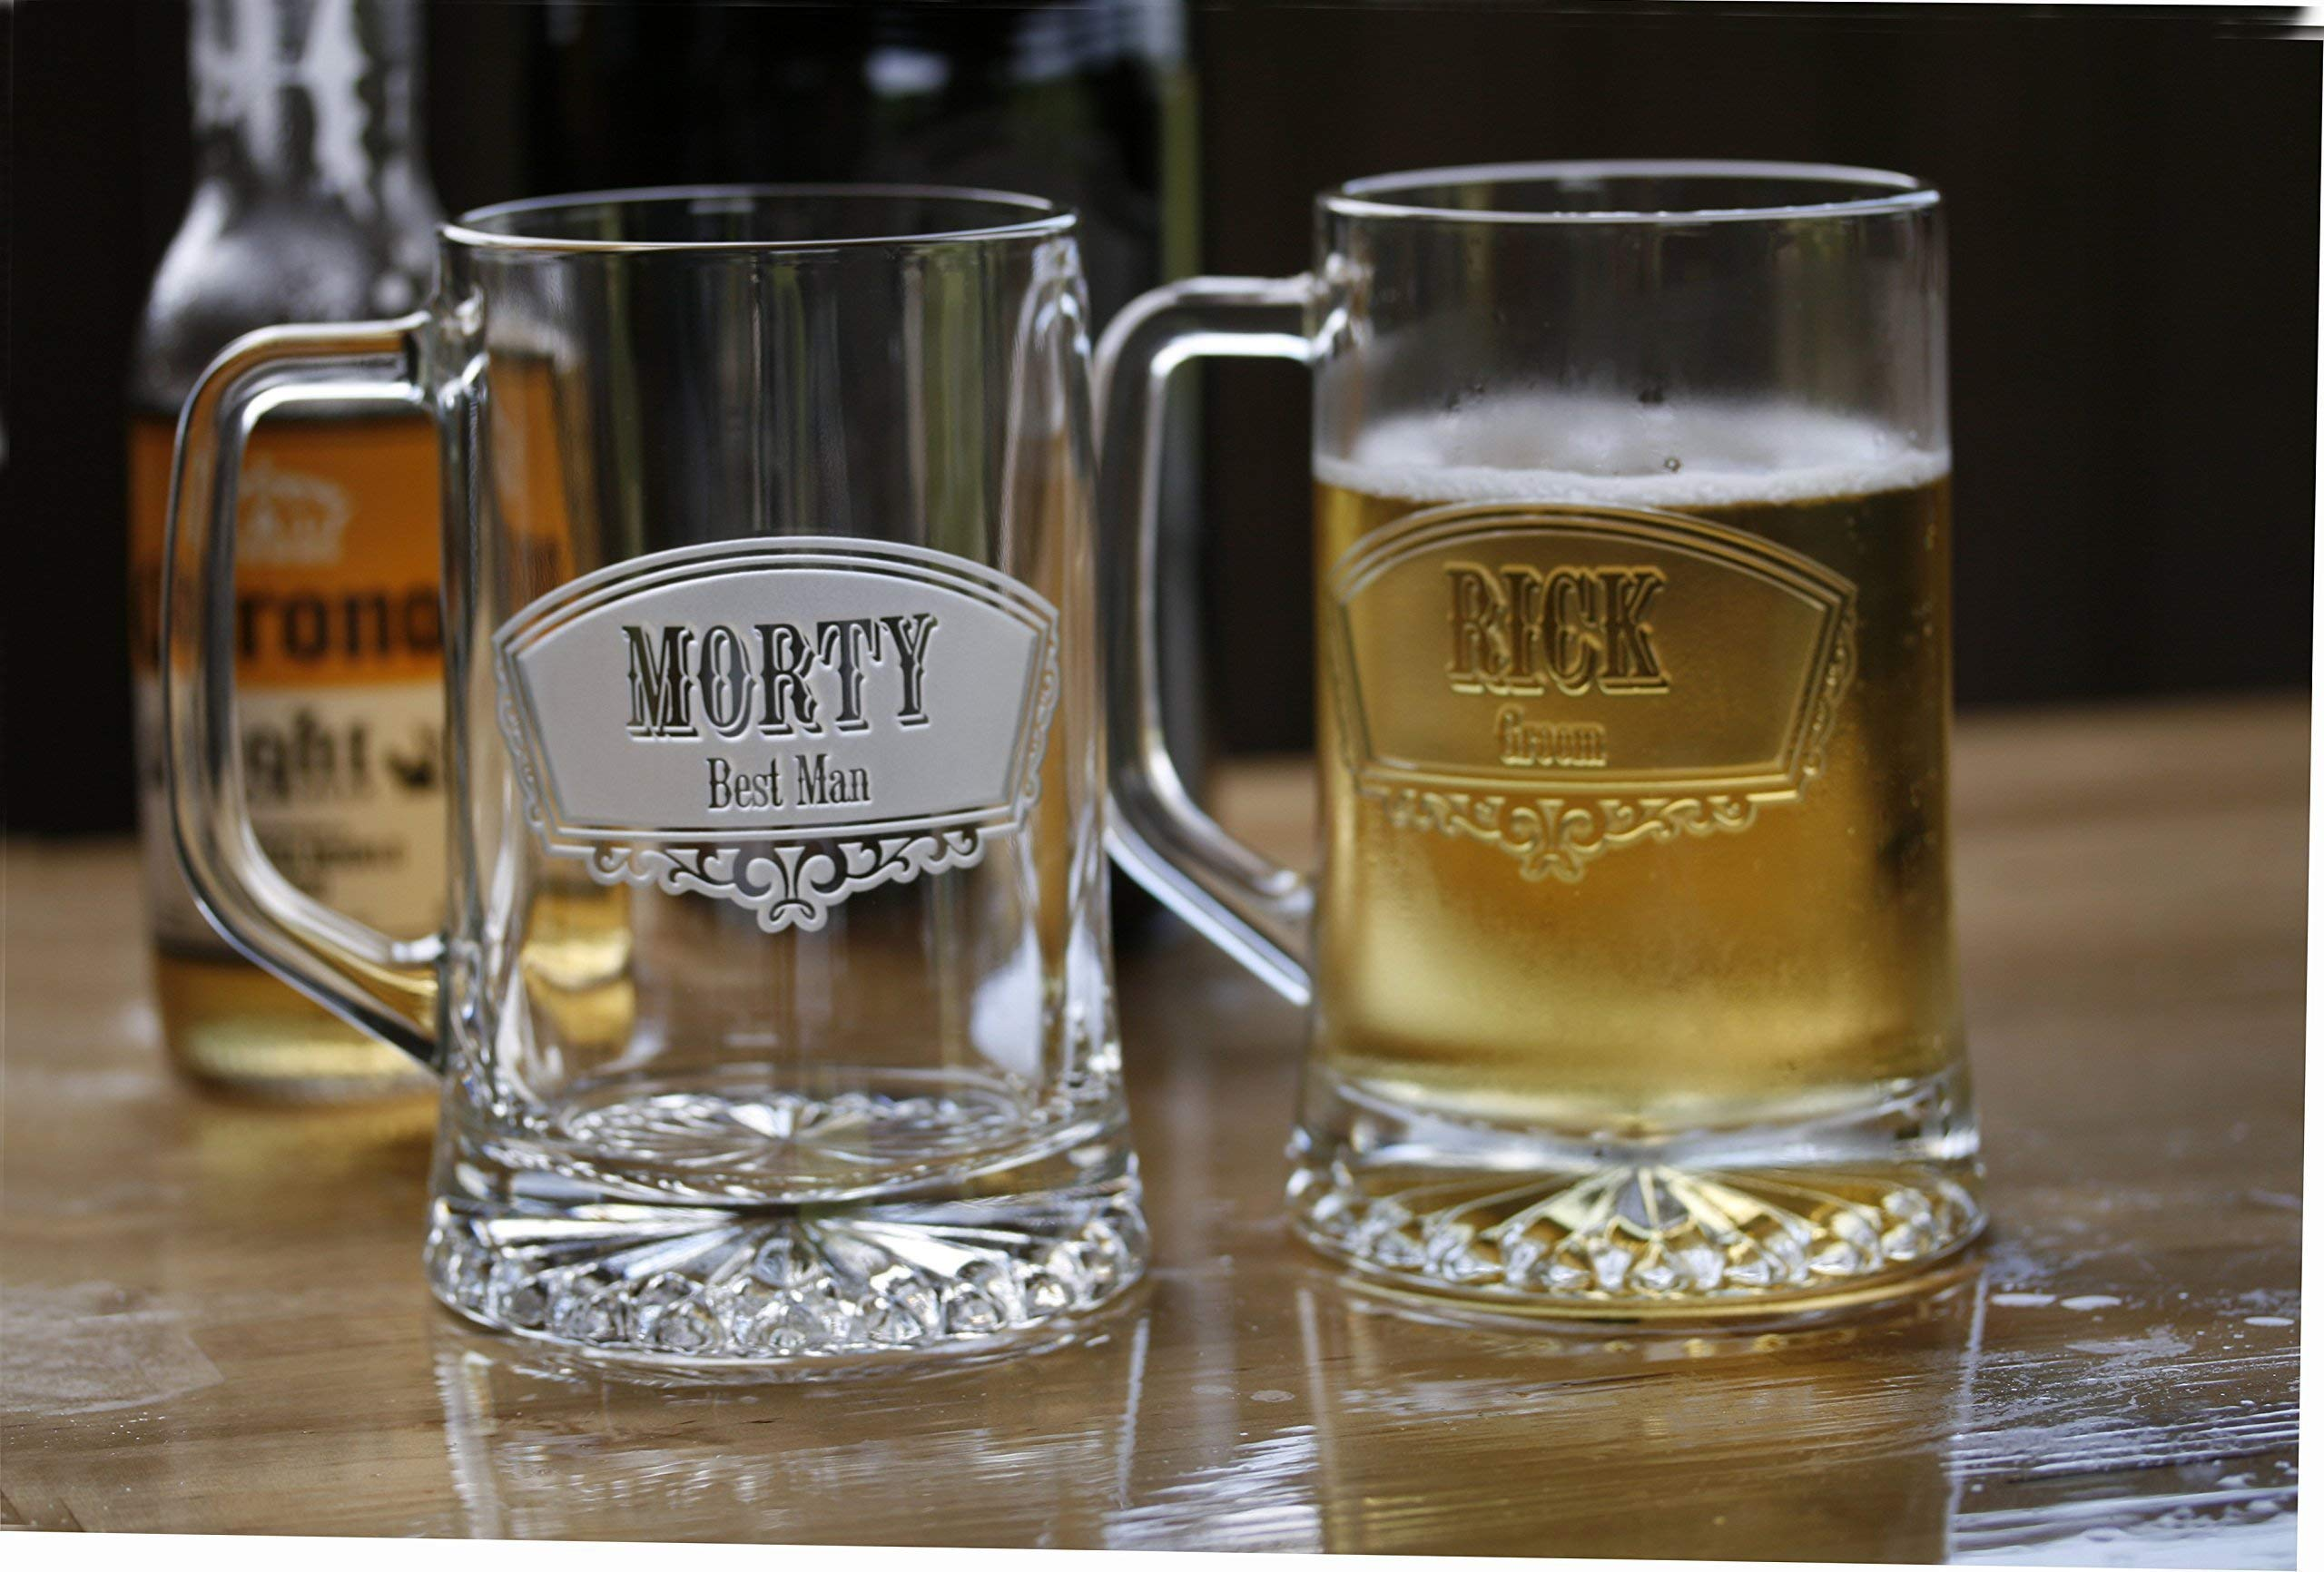 Groomsmen Gift Ideas, Best Man Beer Mugs Set of 5